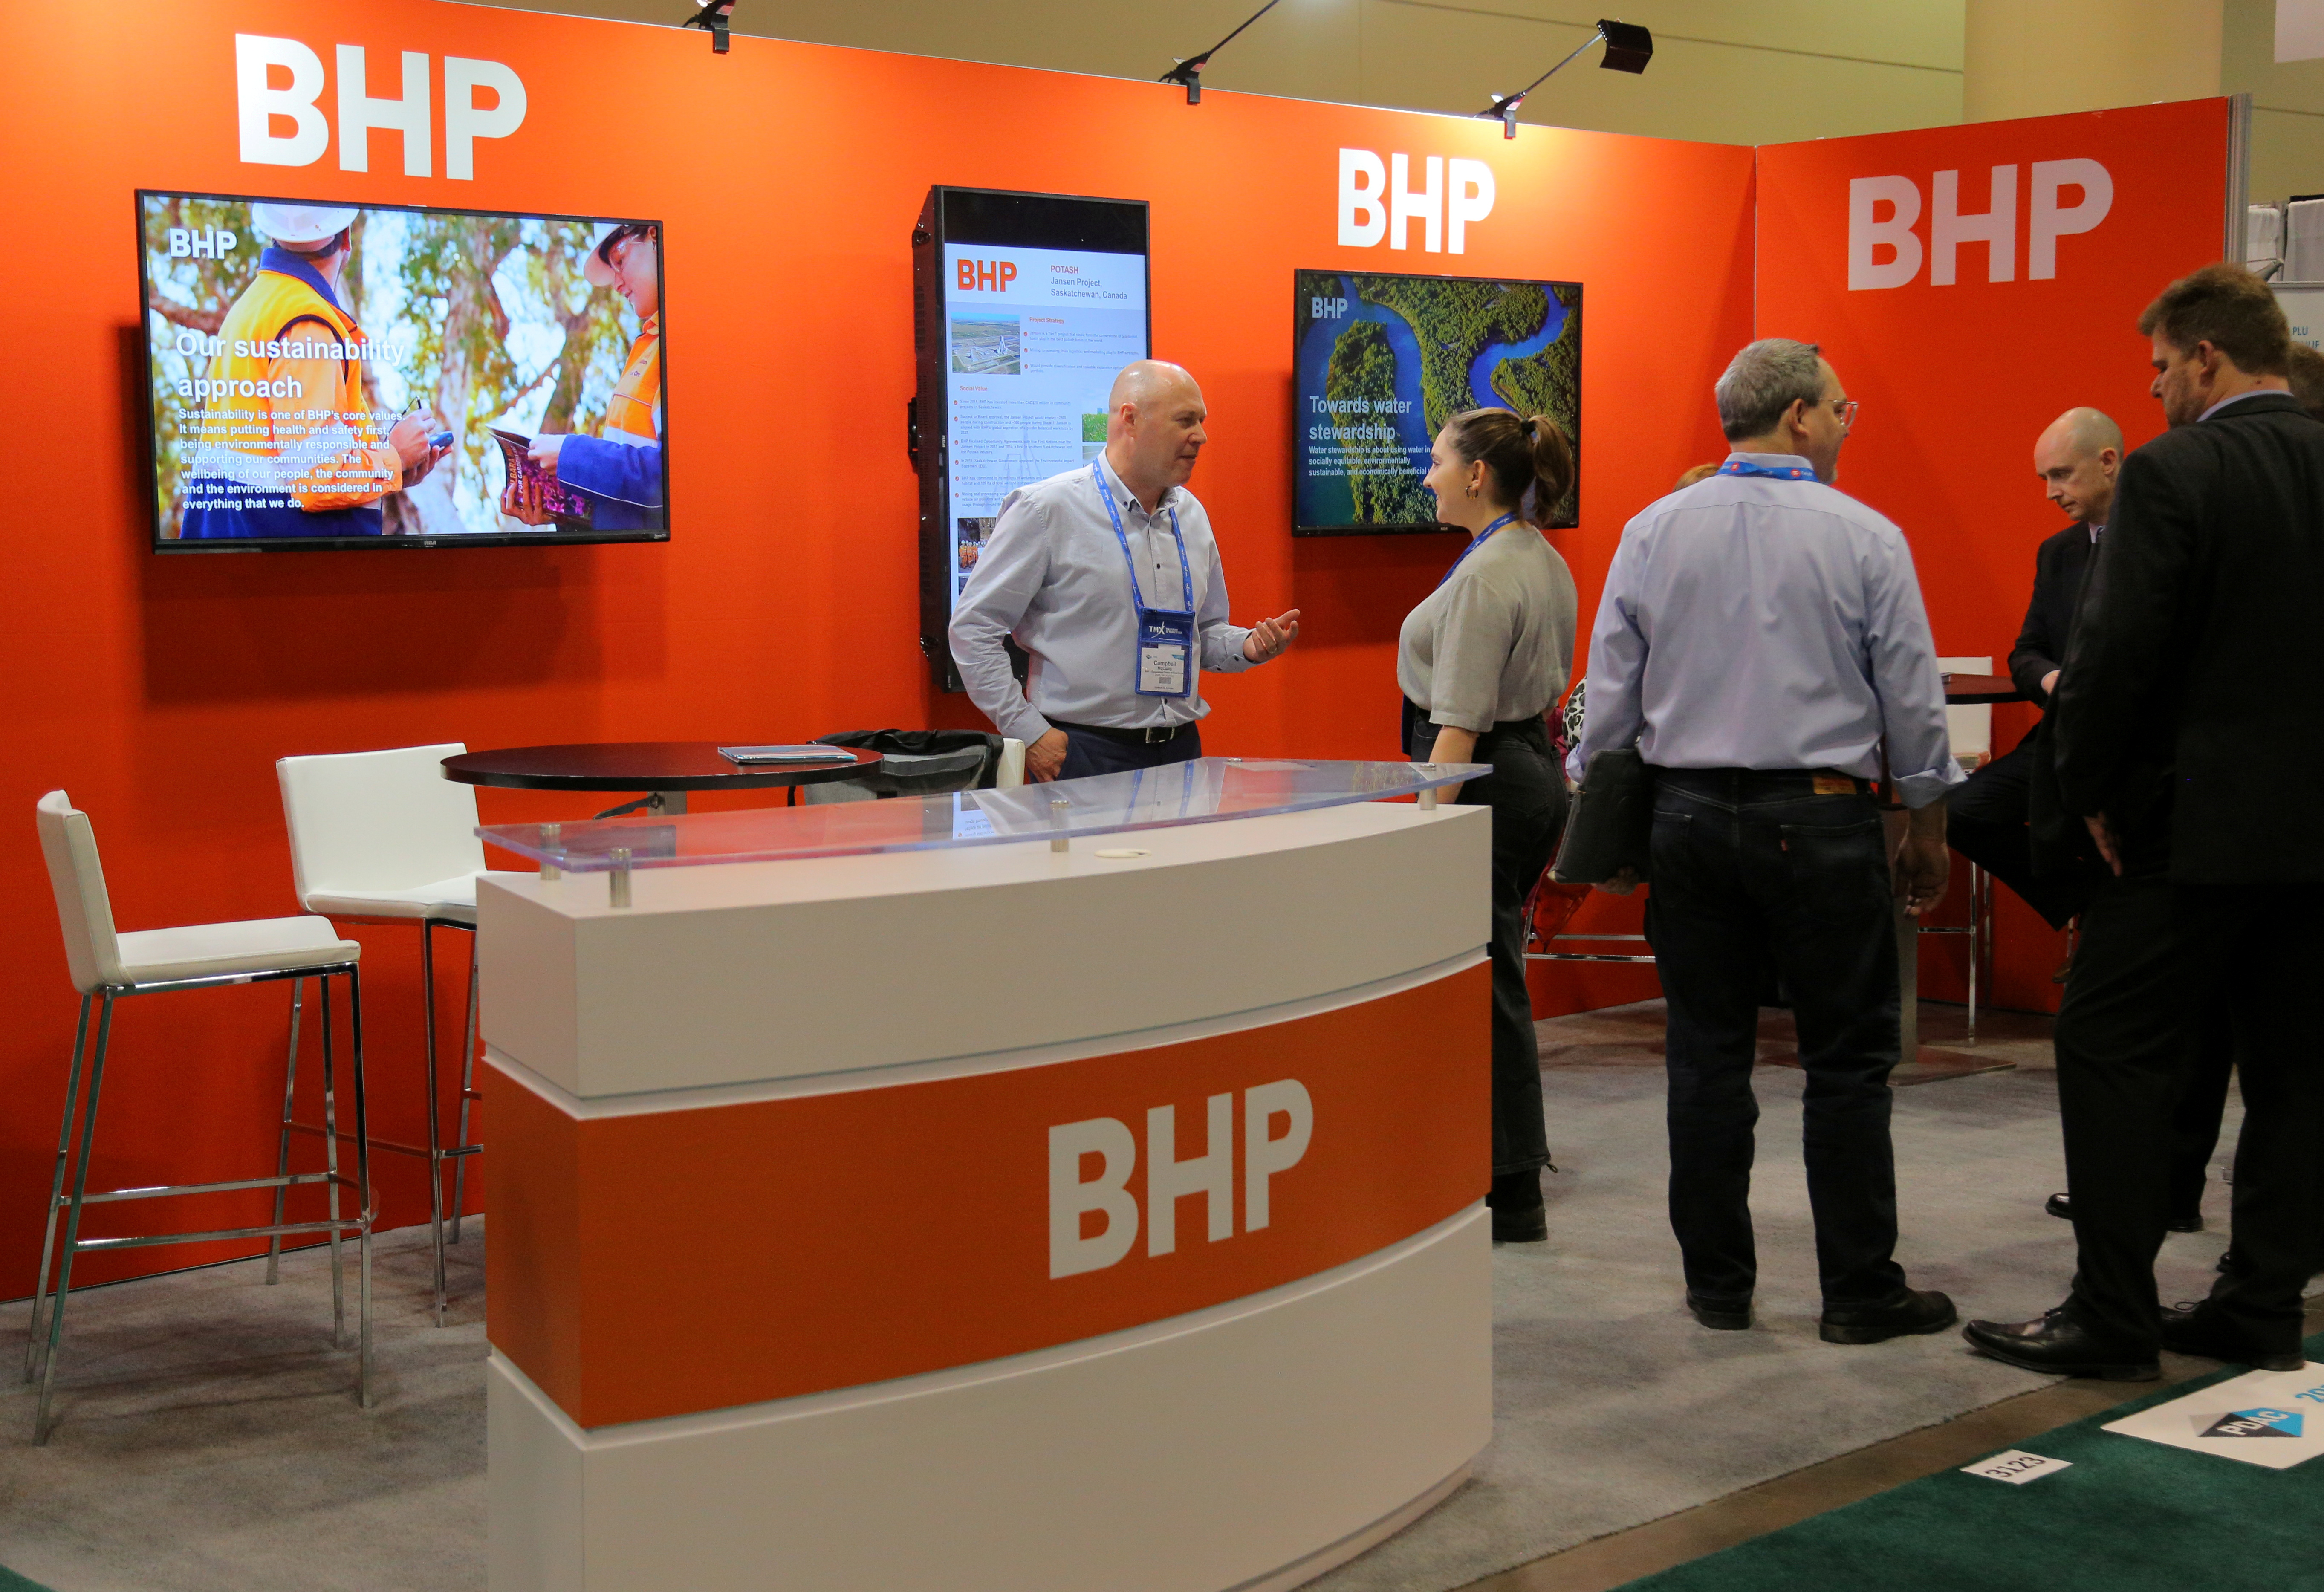 Visitors to the BHP booth speak with representatives during the Prospectors and Developers Association of Canada (PDAC) annual convention in Toronto, Ontario, Canada March 4, 2019. REUTERS/Chris Helgren